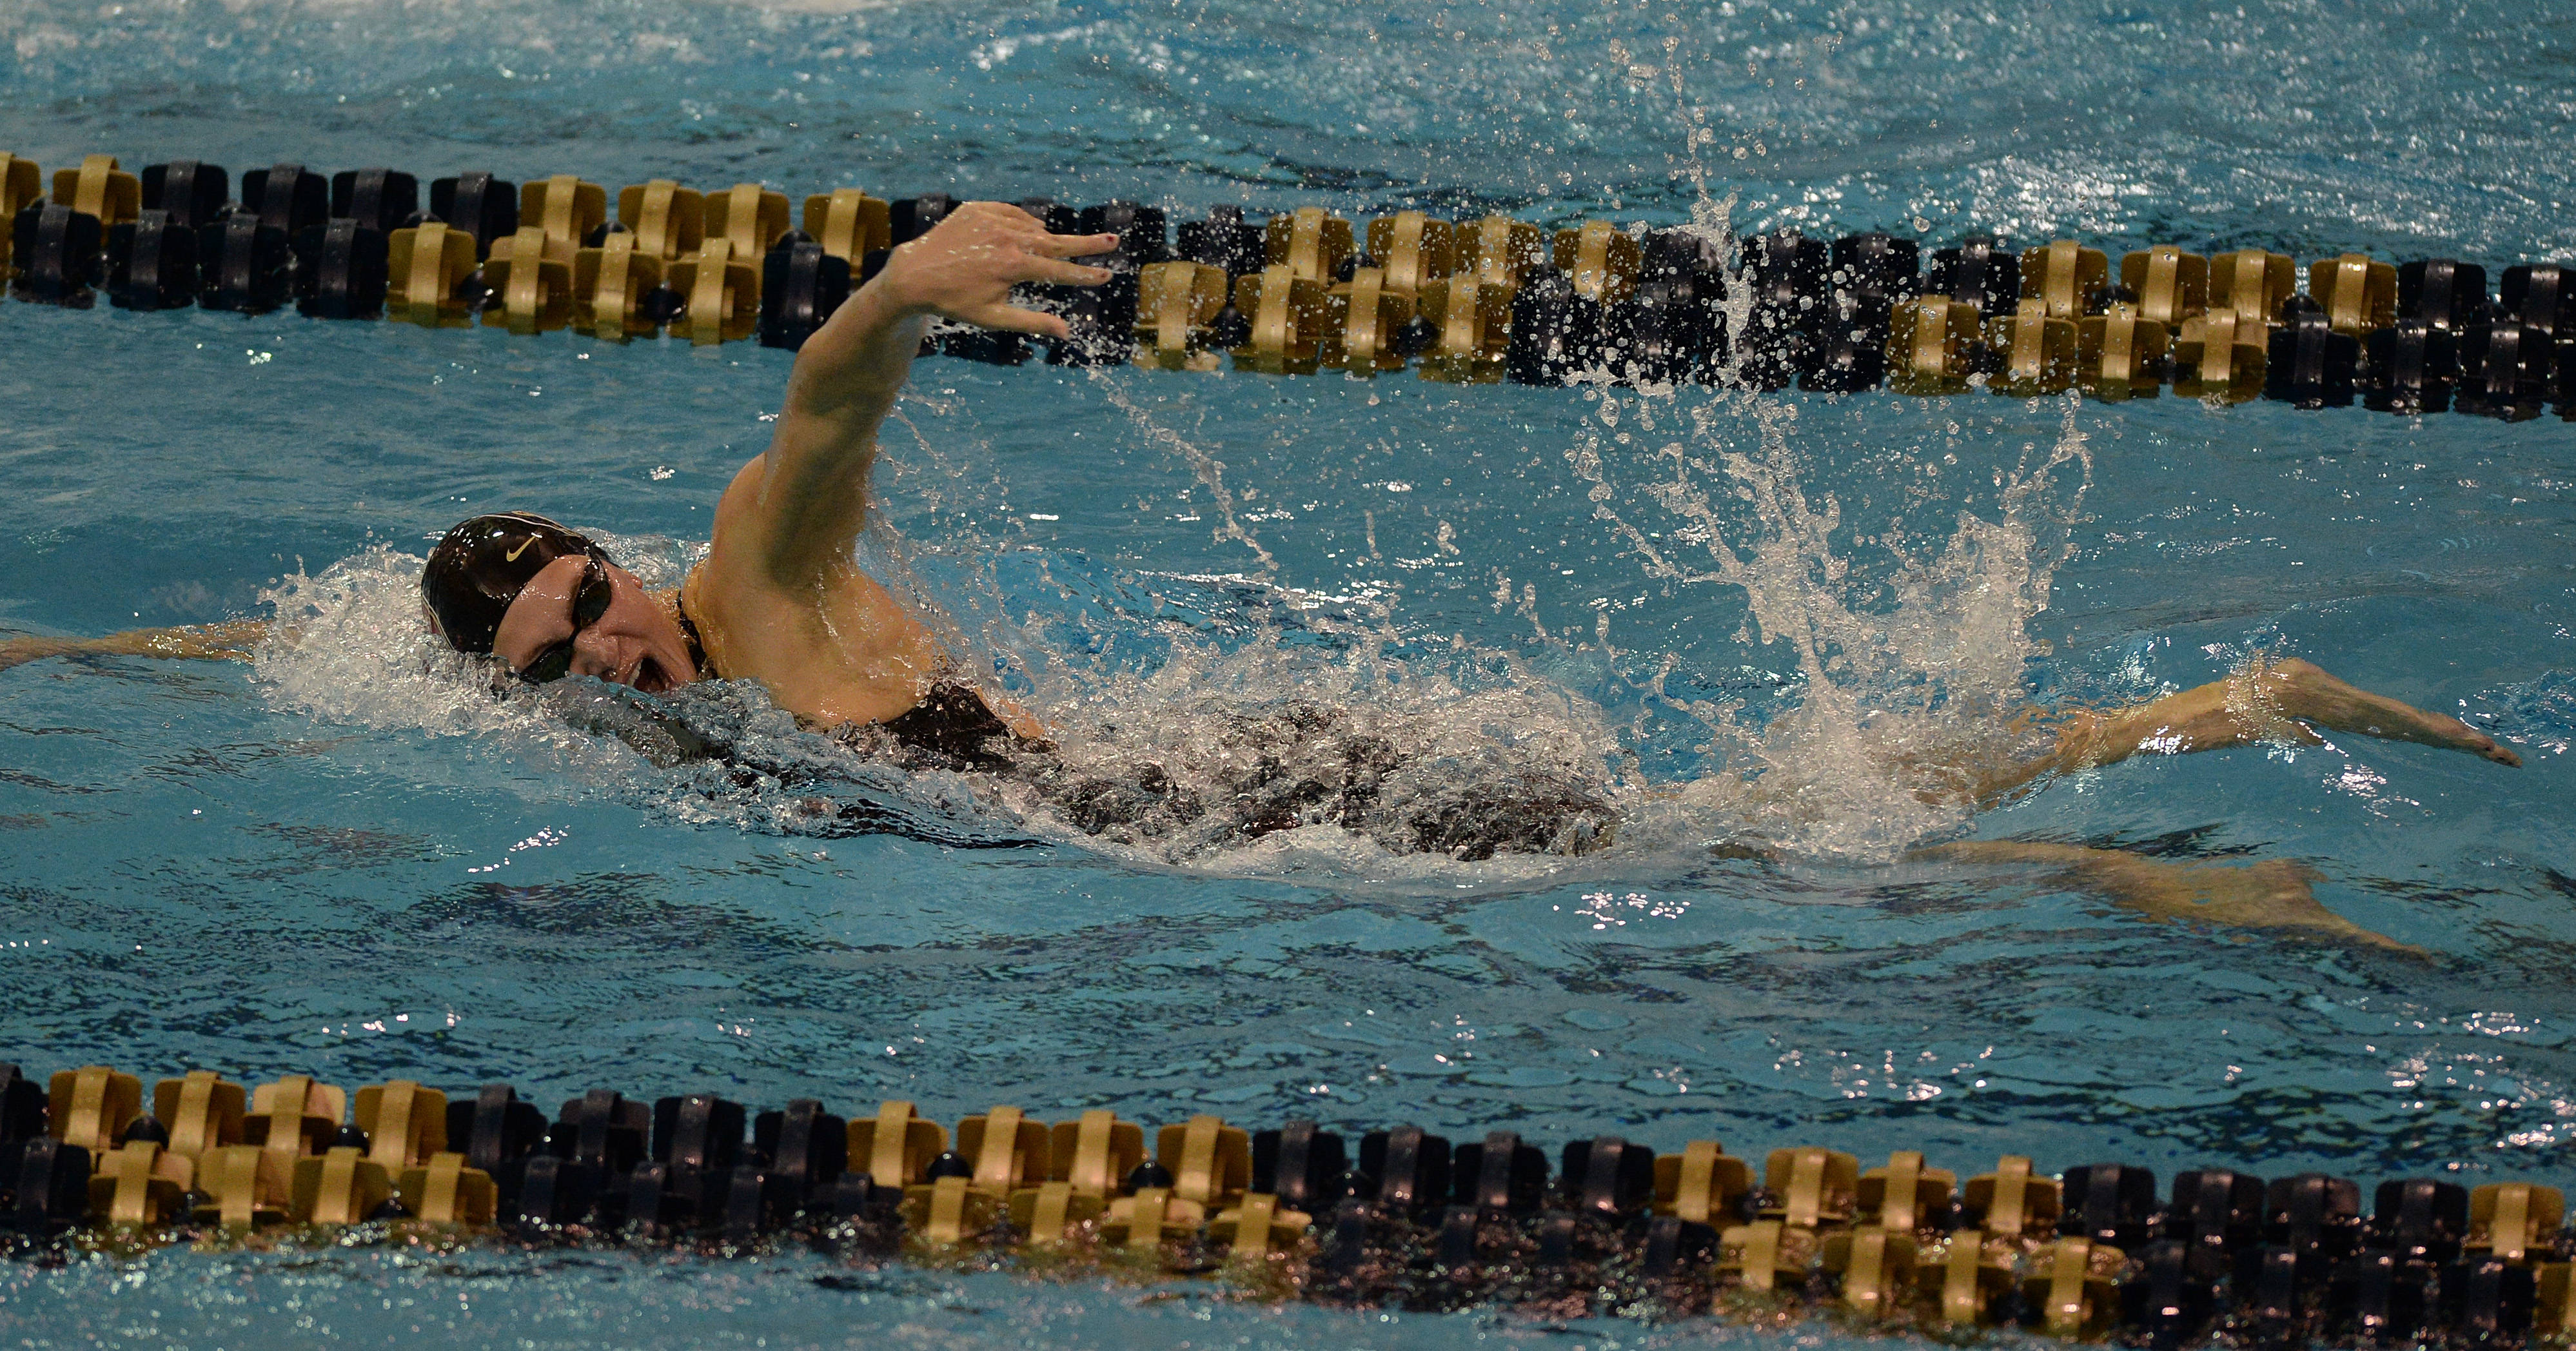 Chelsea Britt anchors  the 400 free relay - Mitch whit